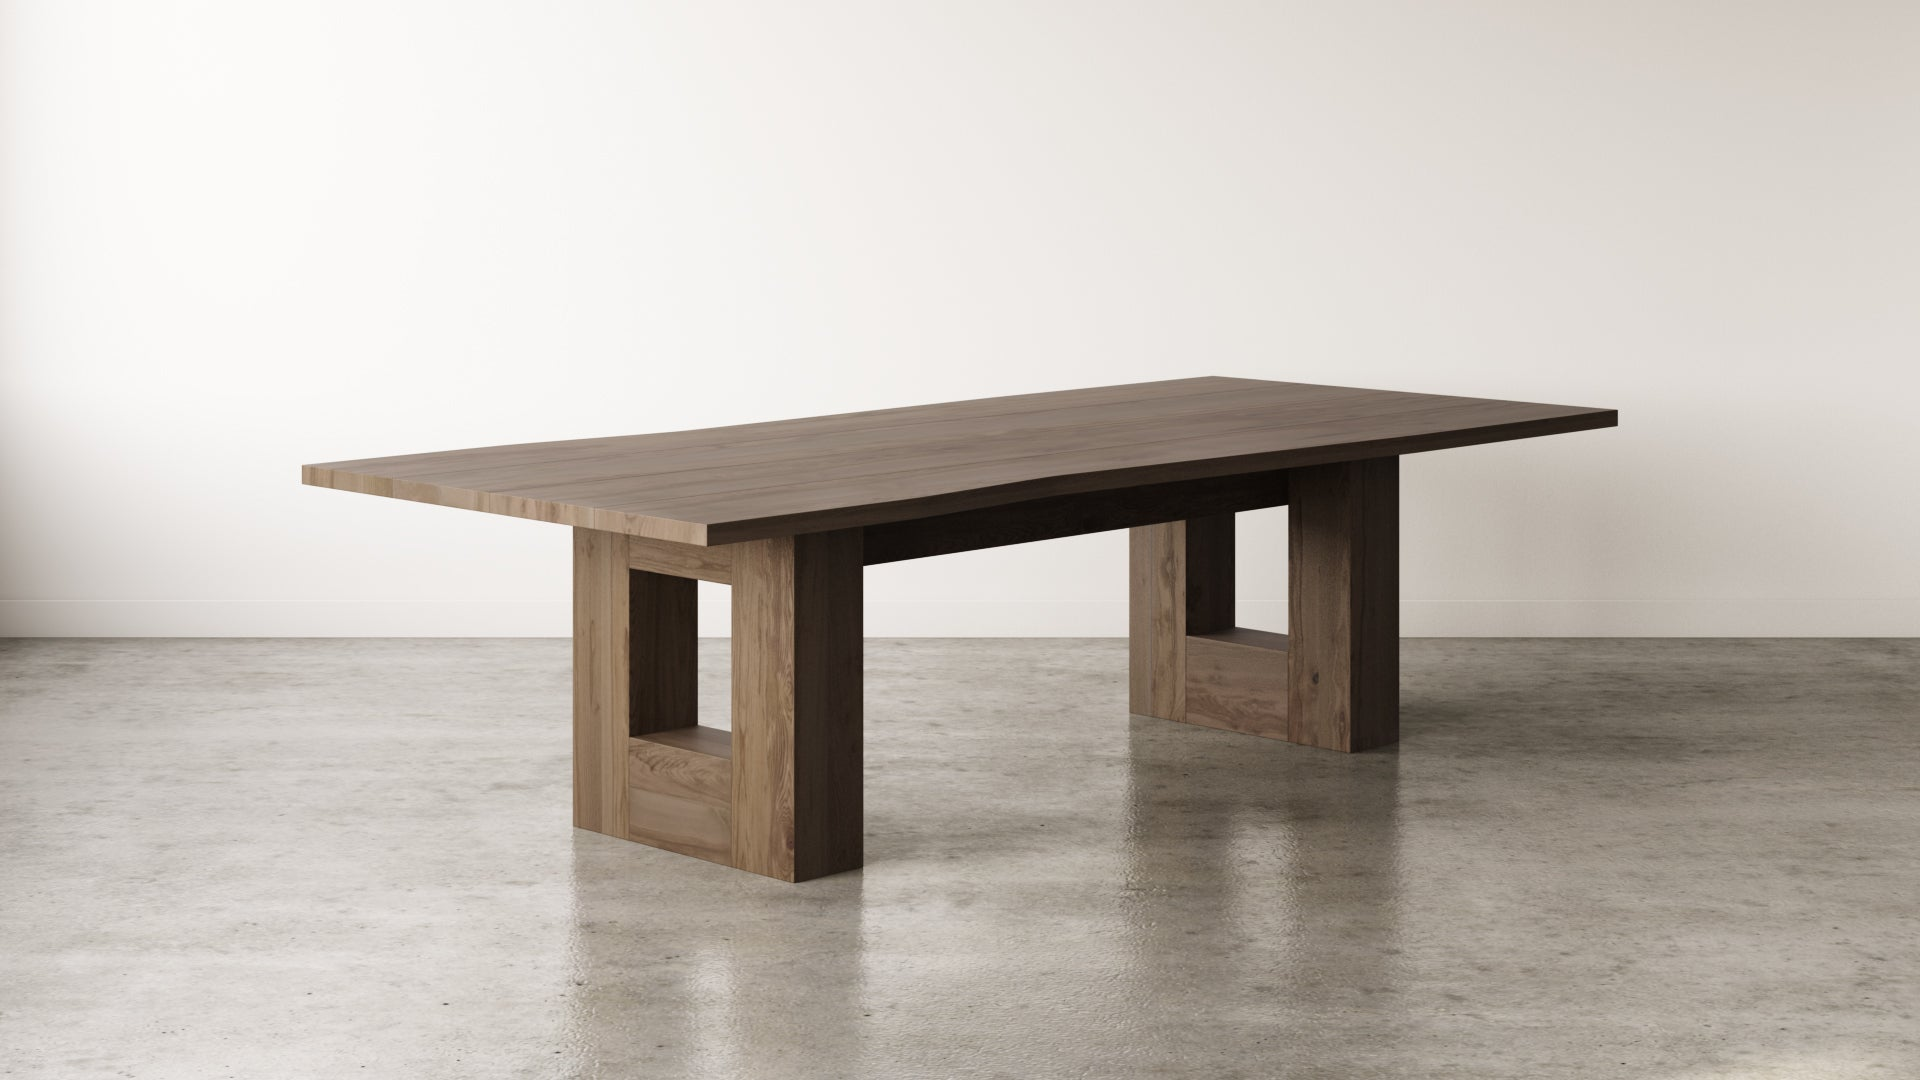 Walnut Wood Commercial Office Table Community Table New Design